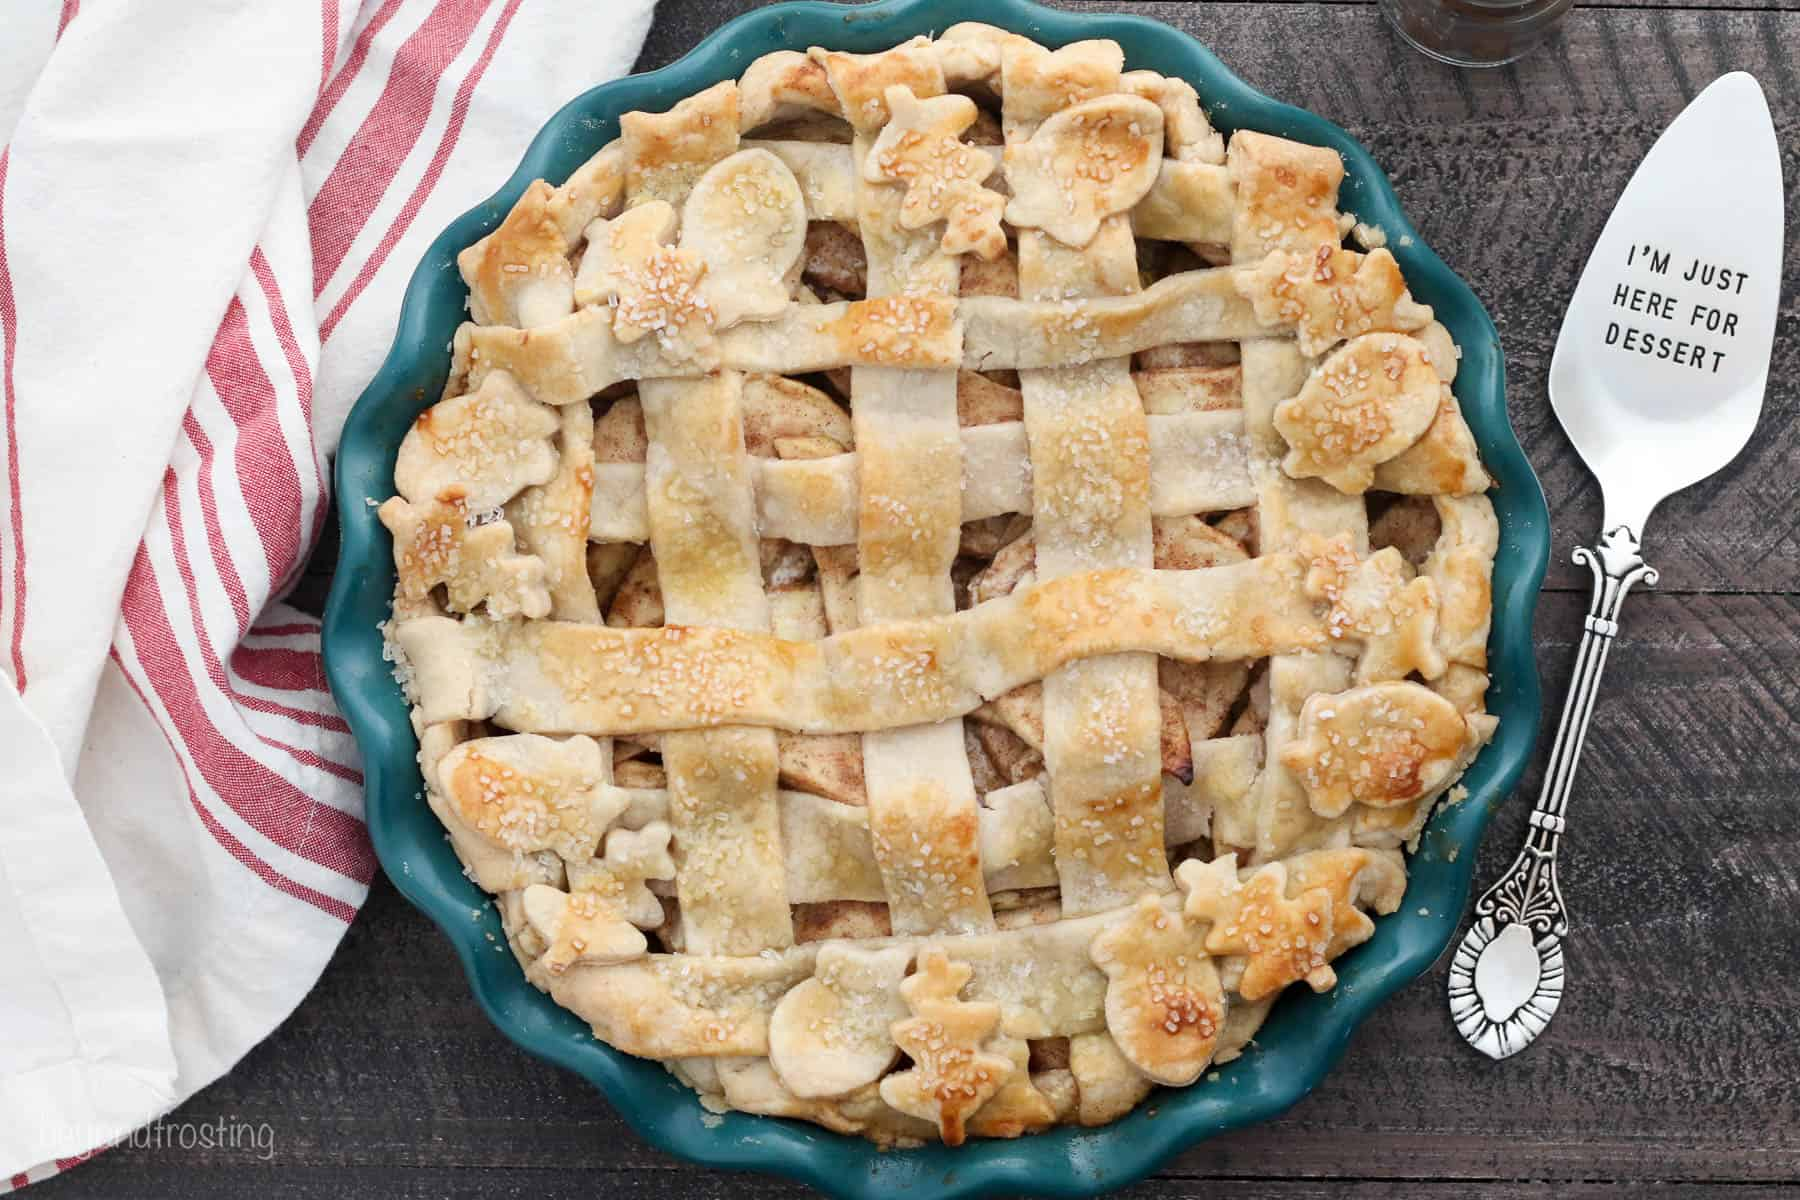 An overhead shot of a lattice topped apple pie in a dark teal pie plate